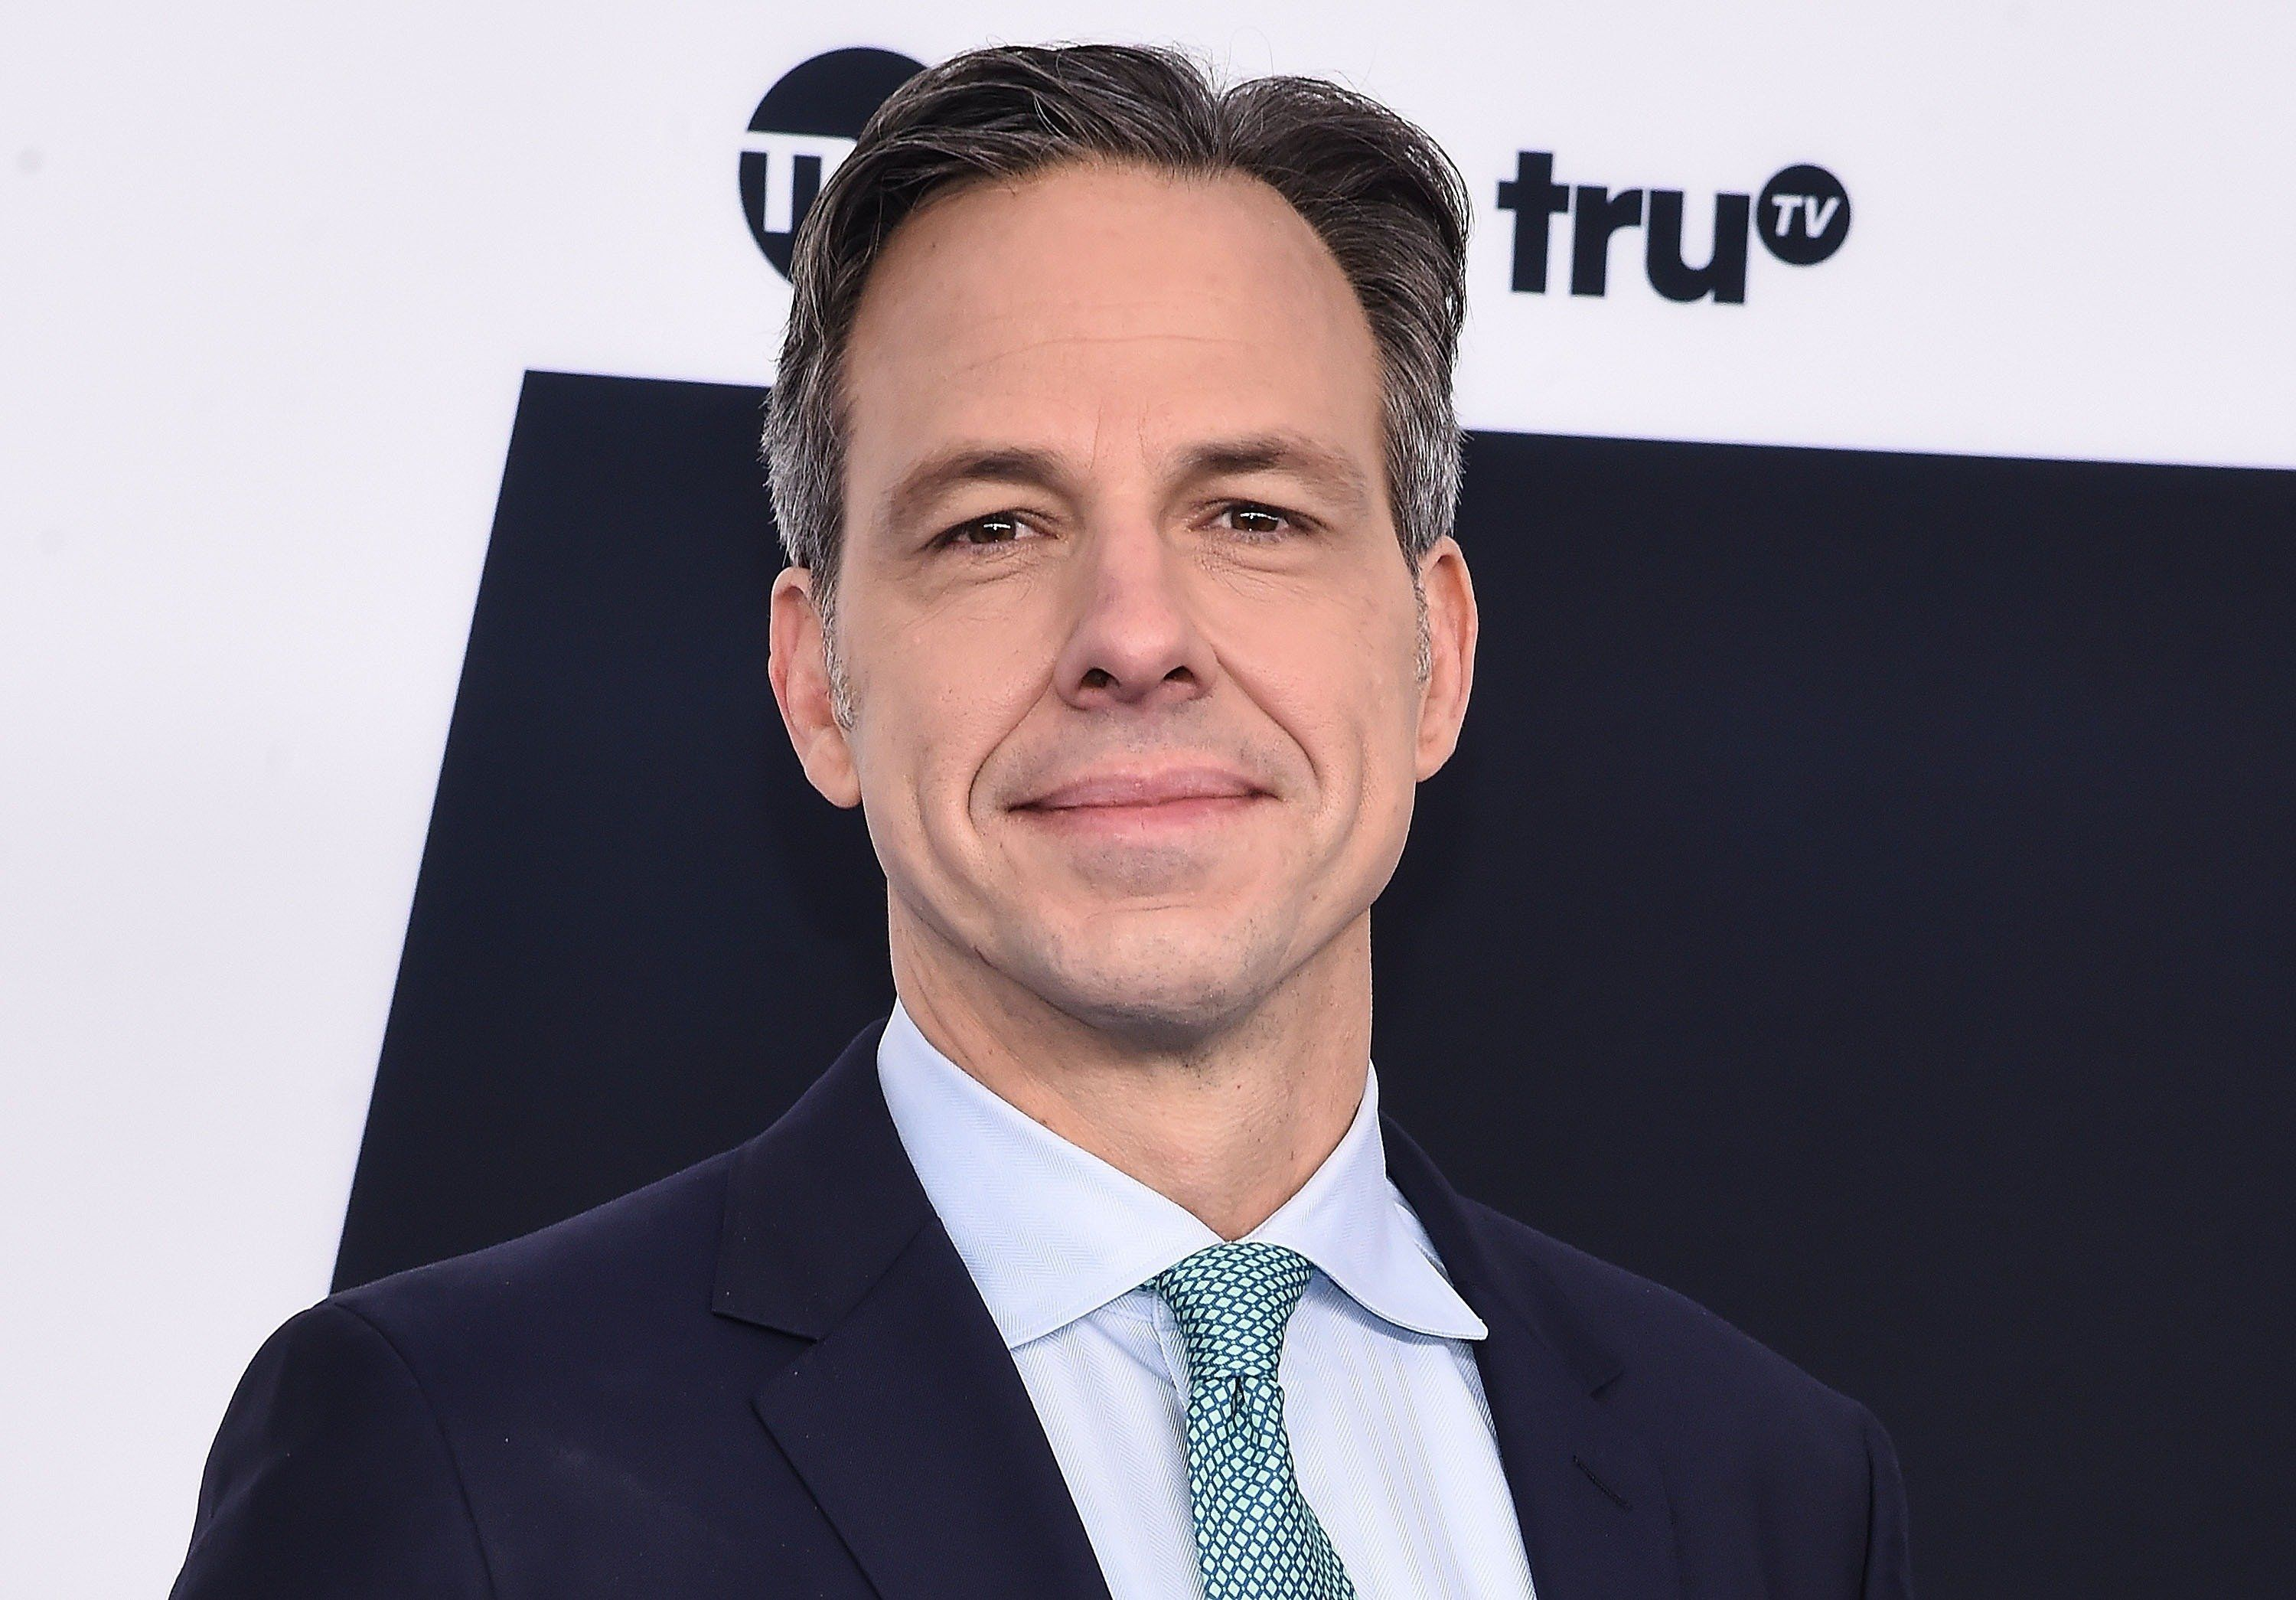 NEW YORK, NY - MAY 17:  Jake Tapper attends the 2017 Turner Upfront at Madison Square Garden on May 17, 2017 in New York City.  (Photo by Daniel Zuchnik/WireImage)